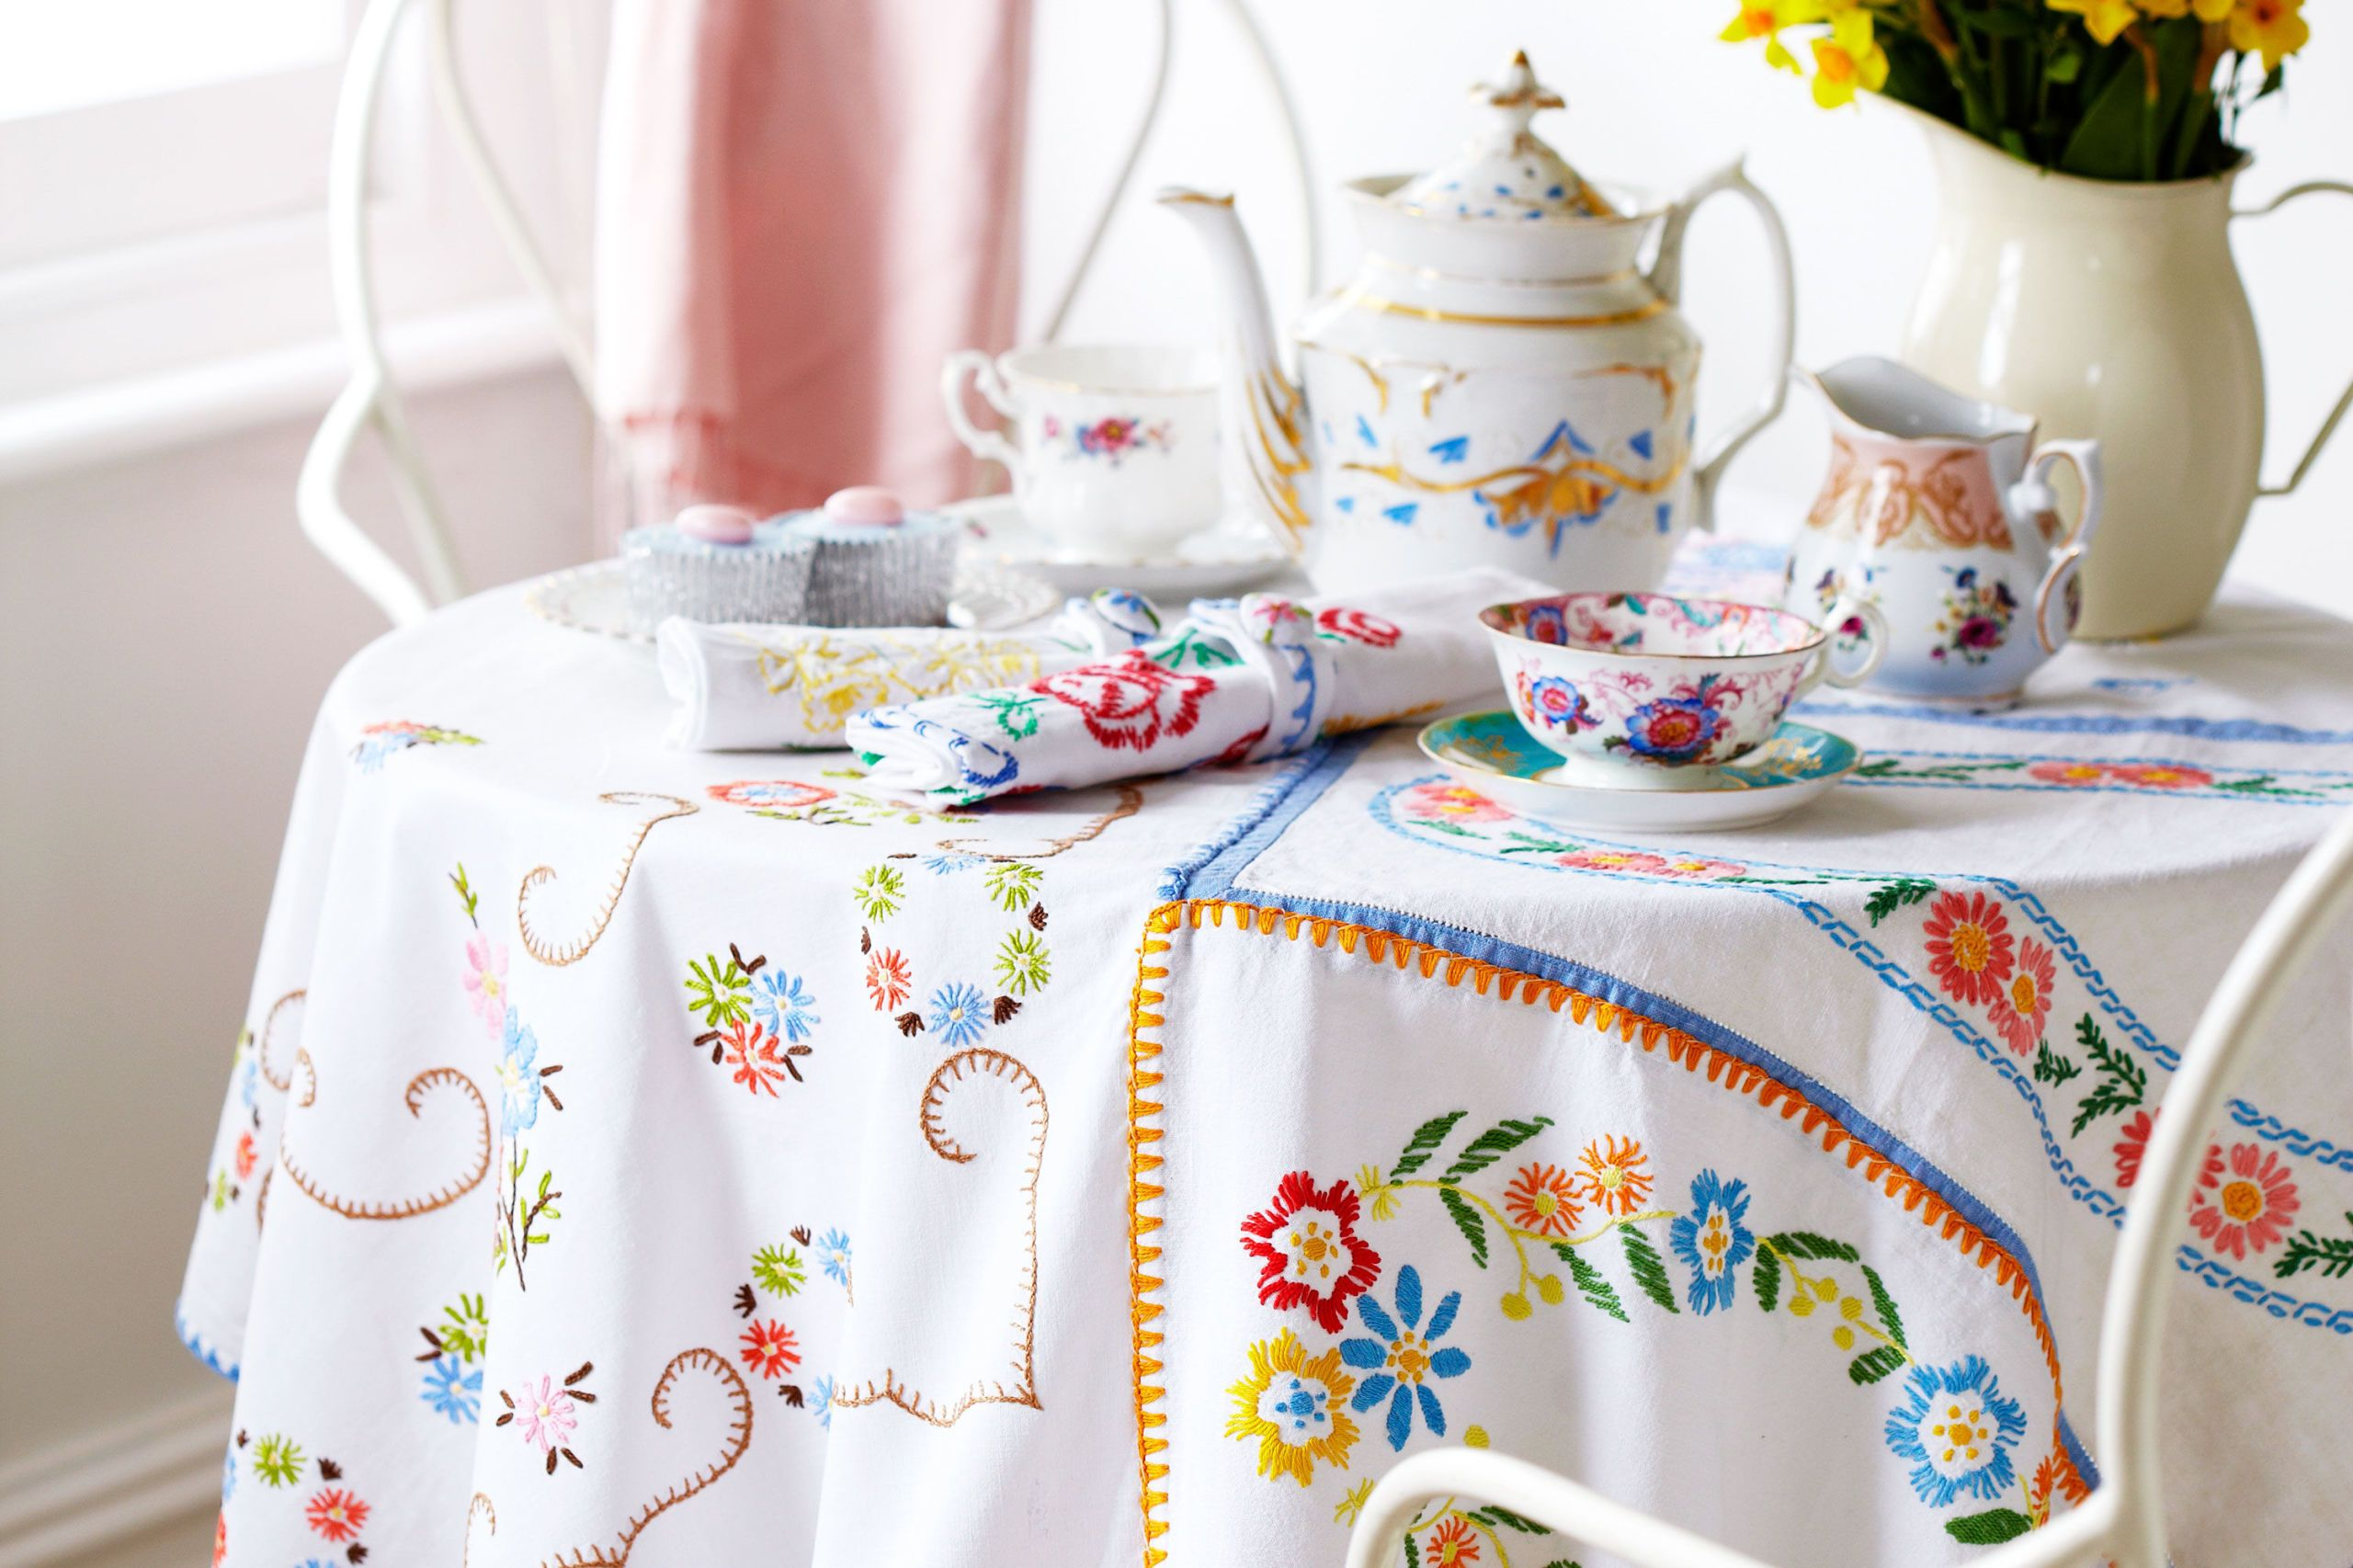 Prima & How to make vintage-style tablecloths and napkins